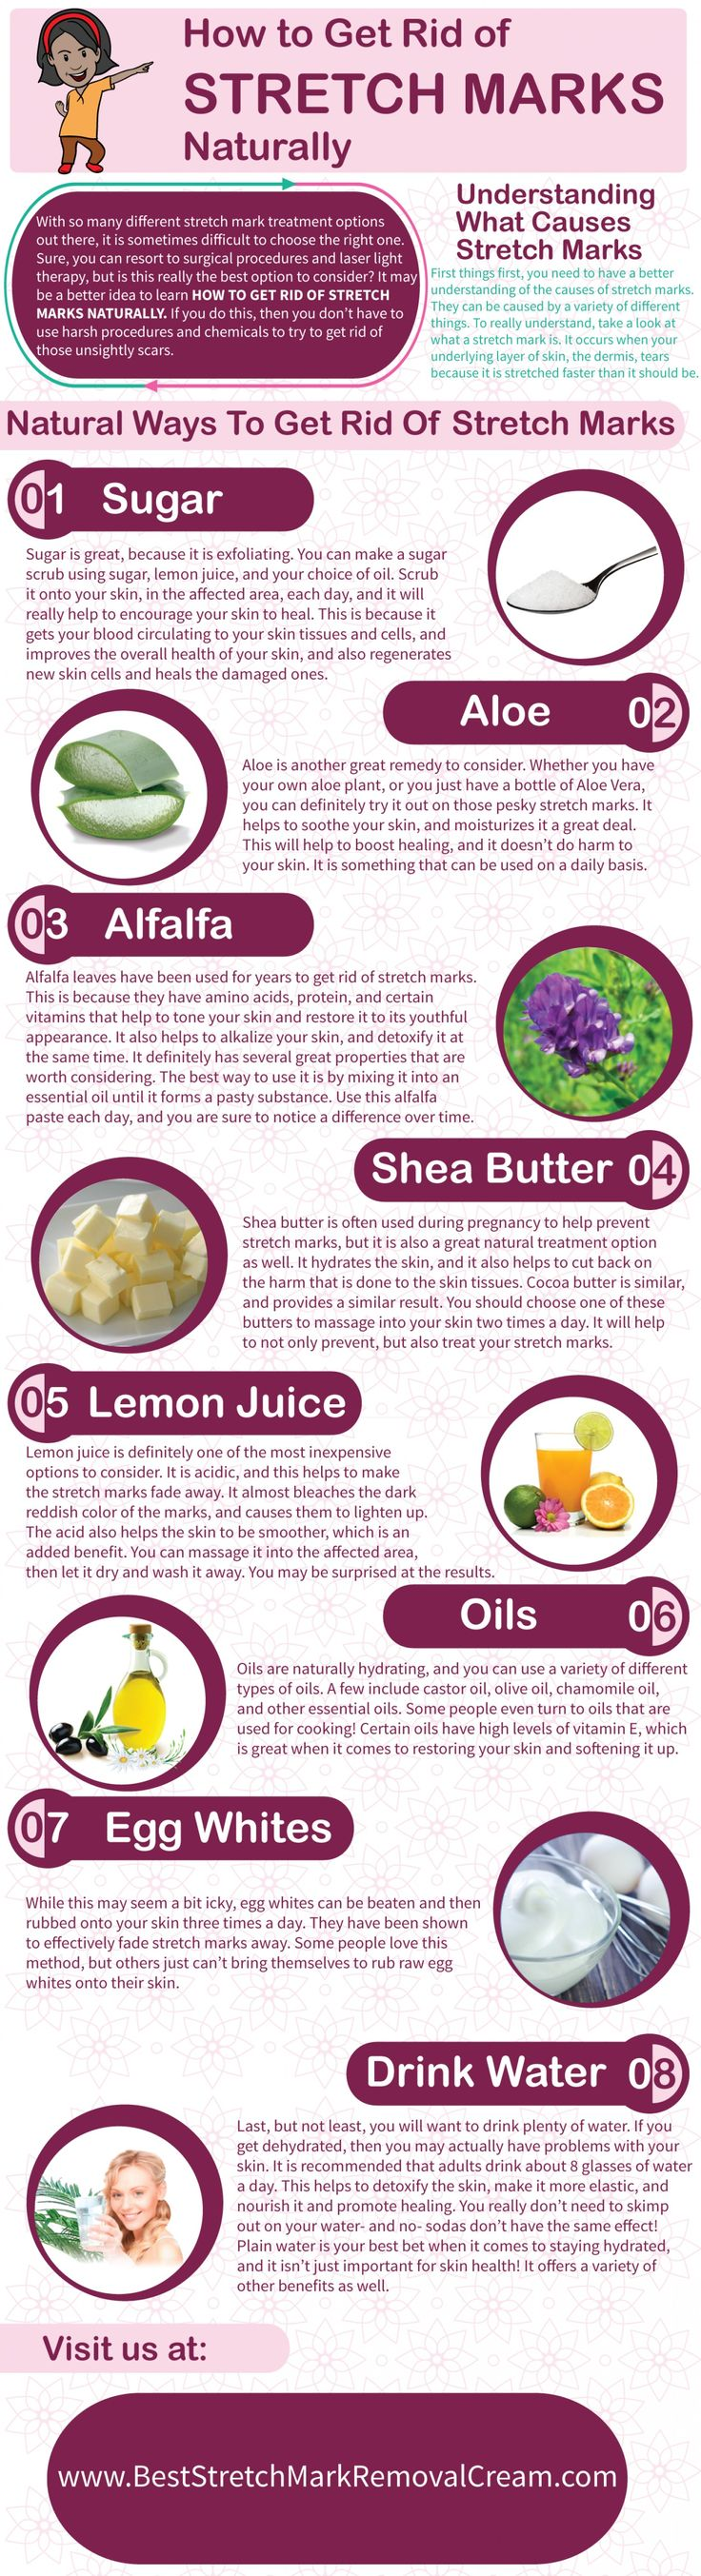 best stretch mark remedies images on pinterest